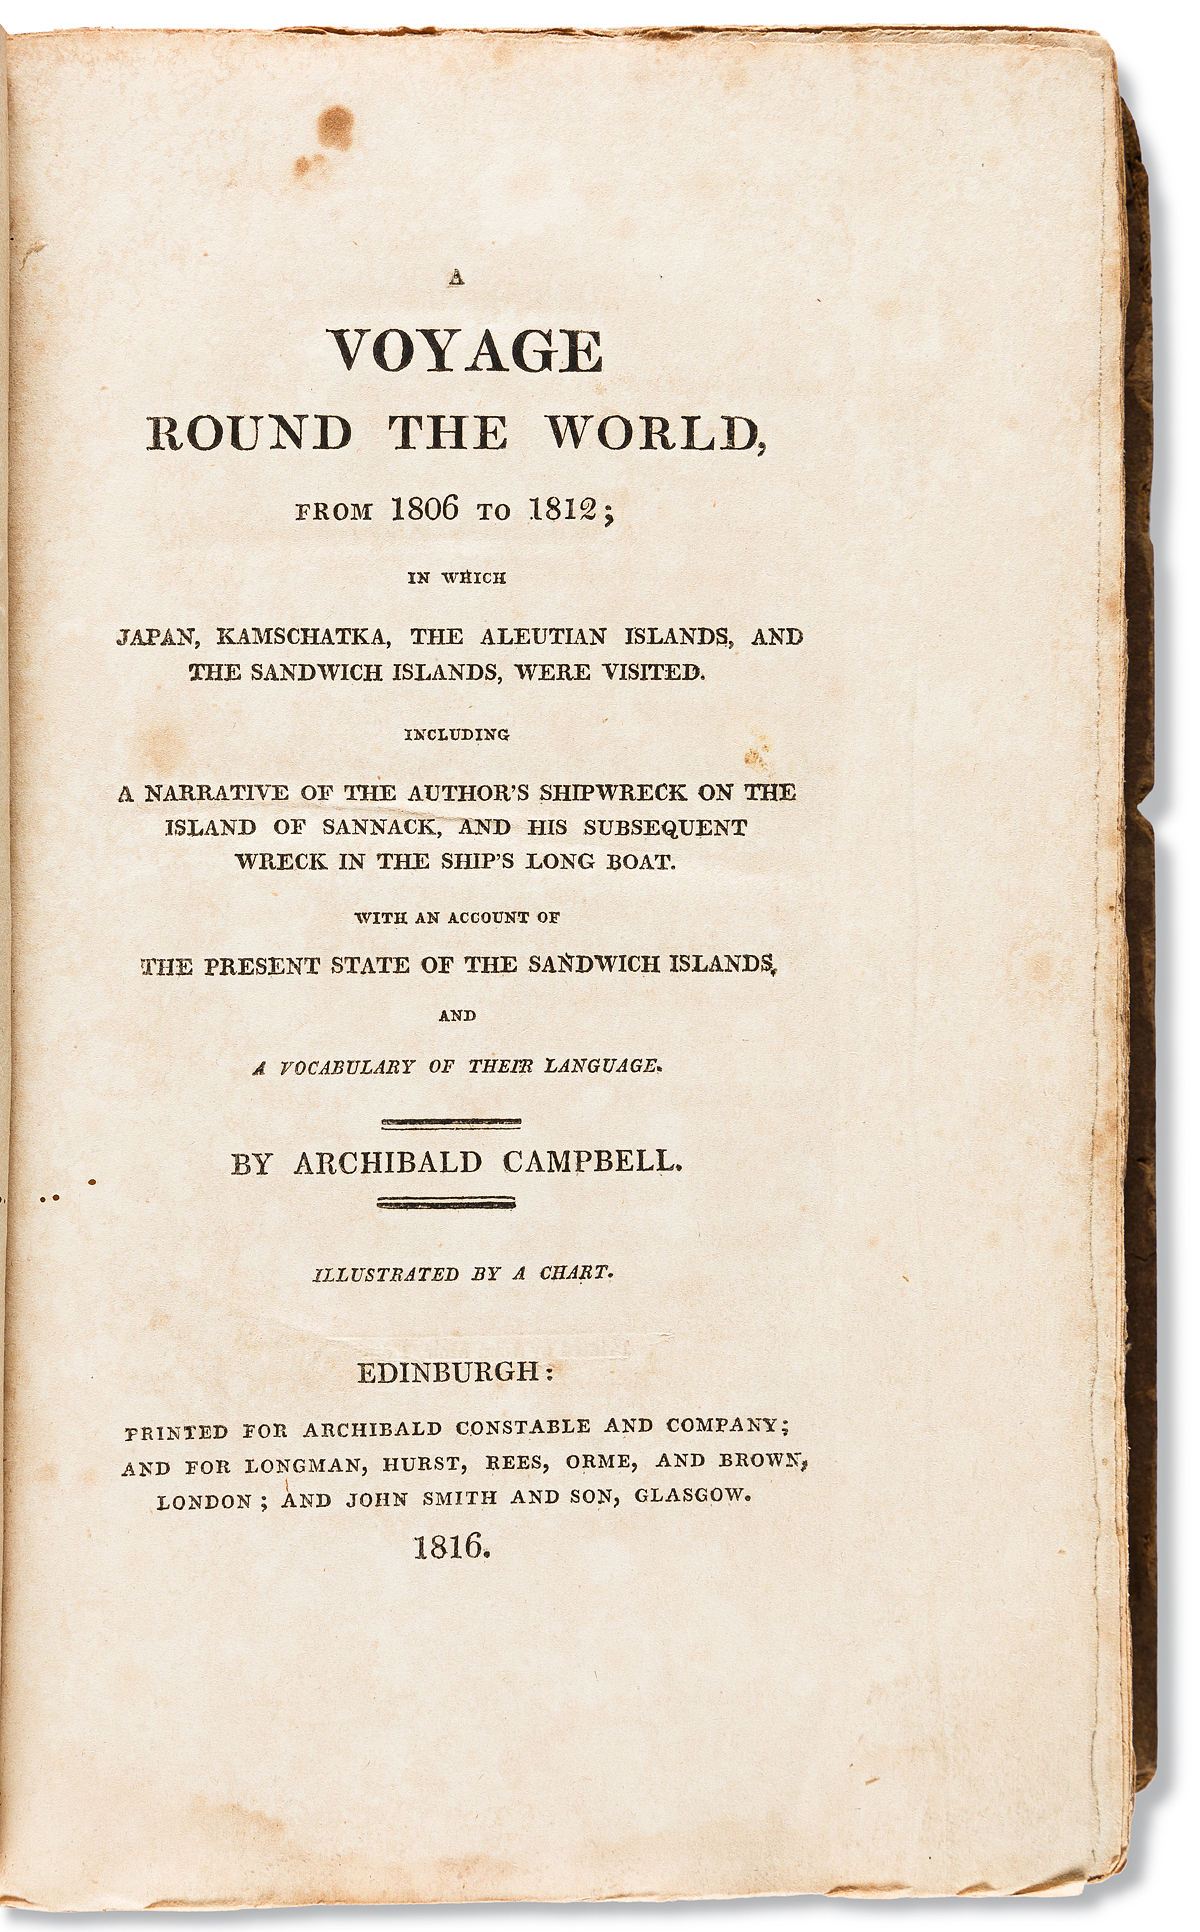 (TRAVEL.) Archibald Campbell. A Voyage Round the World . . . in which Japan, Kamschatka, the Aleutian Islands,